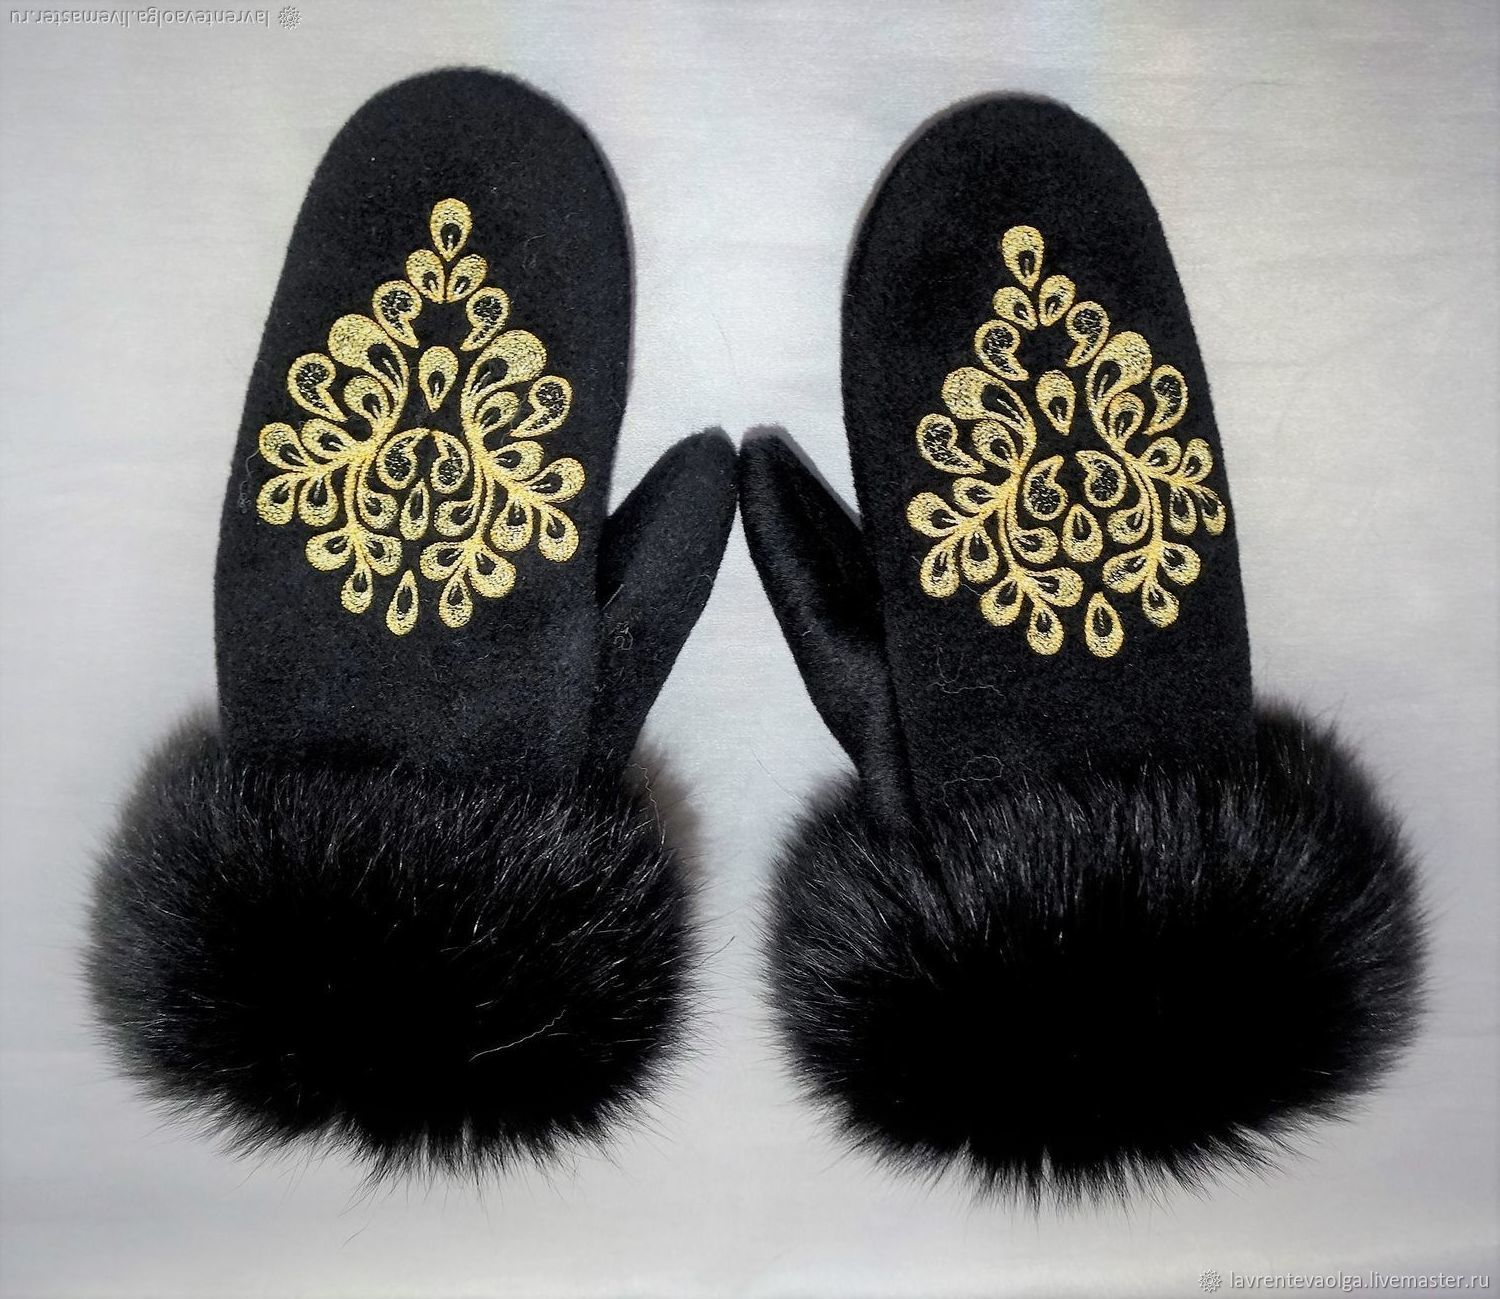 Cashmere mittens with fur and embroidery, Mittens, Moscow,  Фото №1